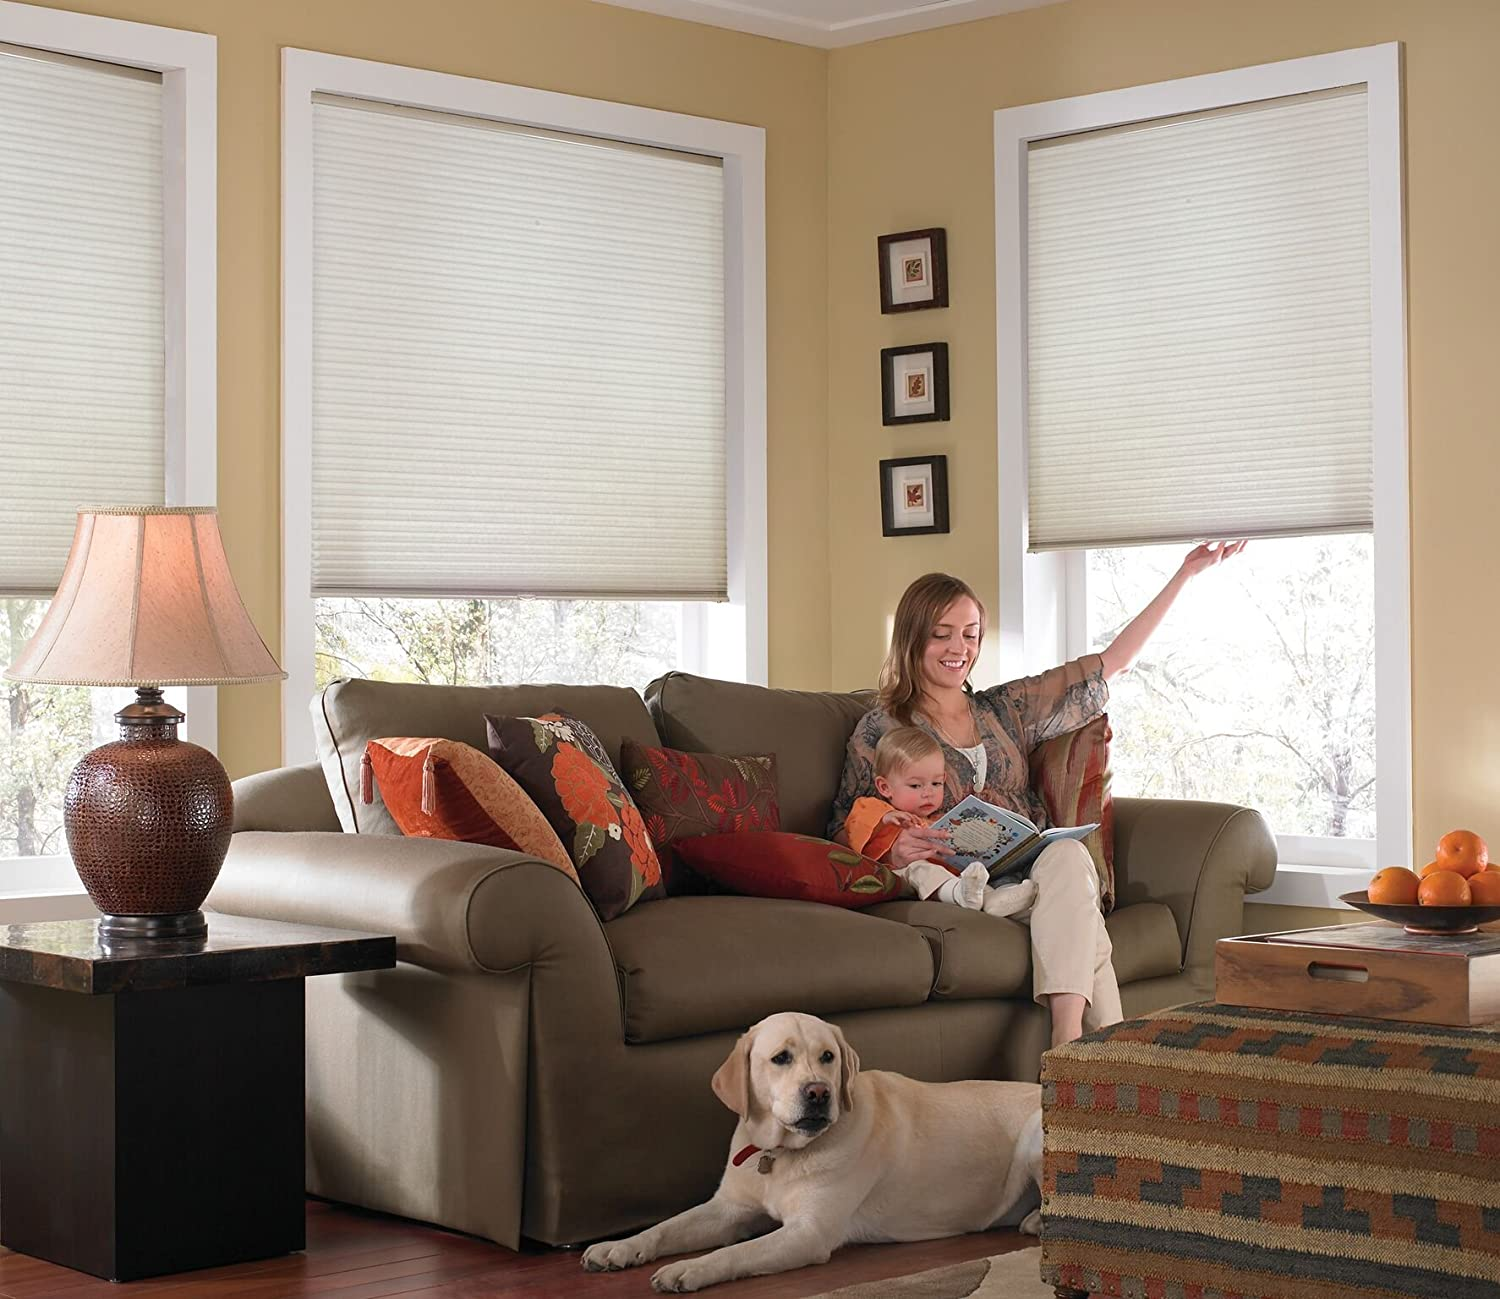 Windowsandgarden Custom Cordless Single Cell Shades, 24W x 40H, Cool White, Light Filtering 21-72 Inches Wide